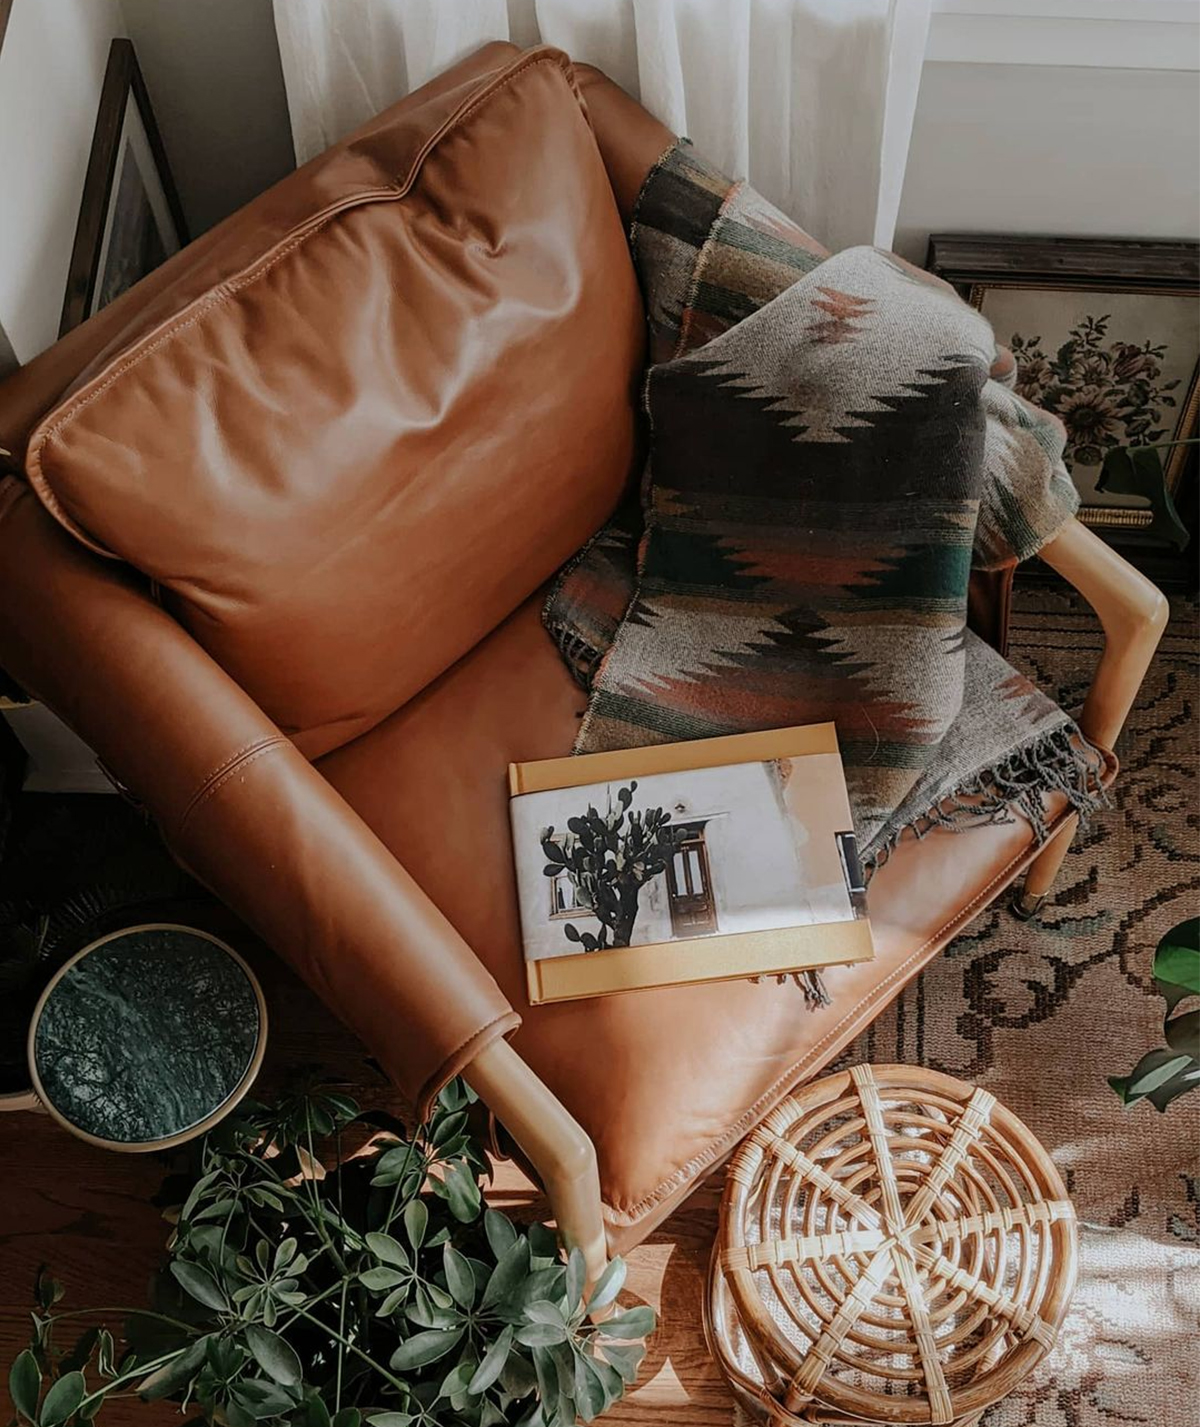 Artifact Uprising Photo Book printed as a travel album laying on leather armchair next to patterned throw blanket